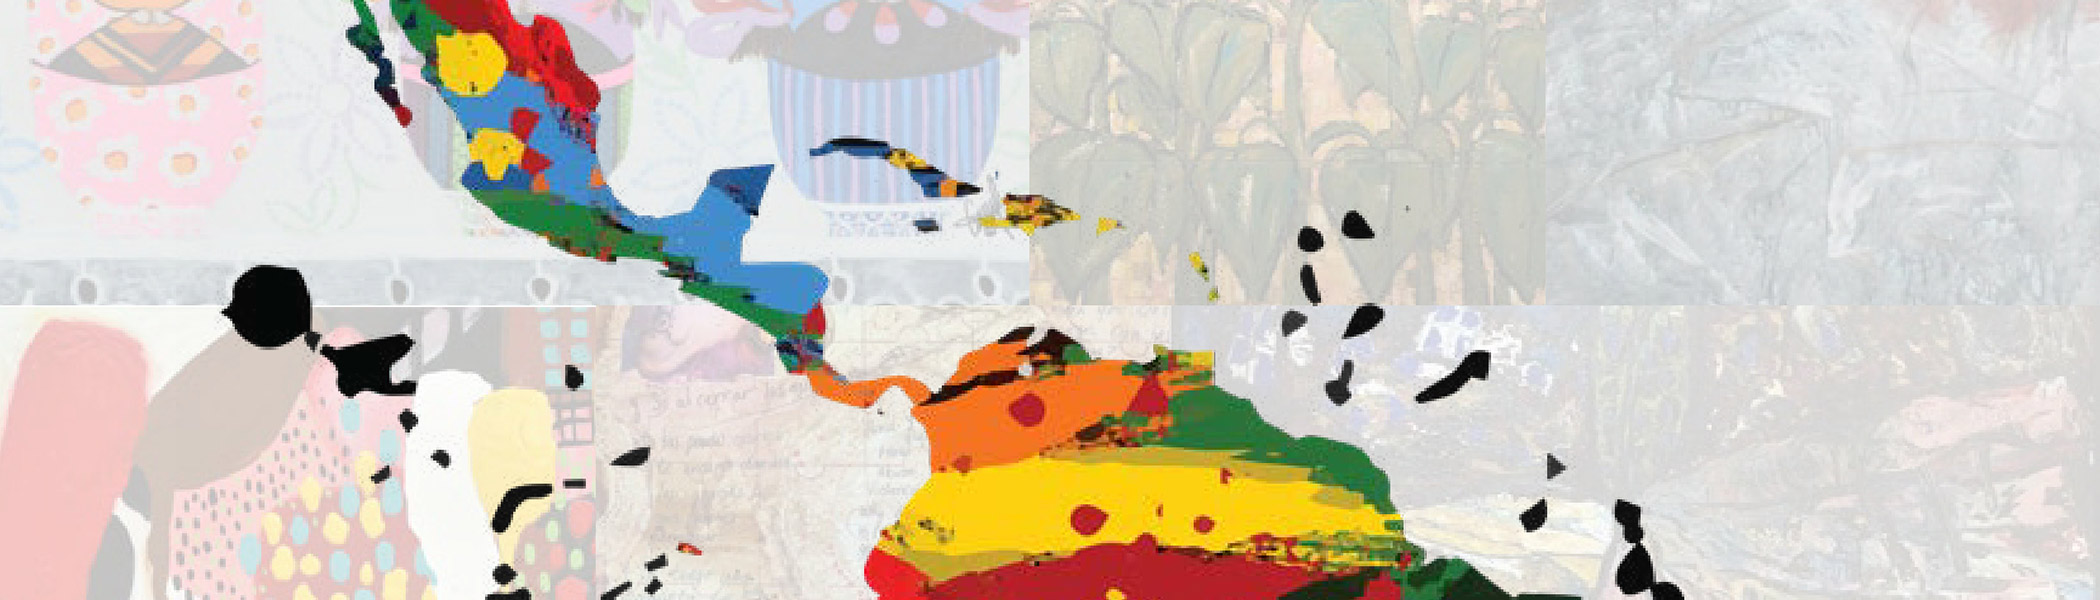 A mosaic made up of artistic expressions at the Virtual Latin American Art Festival 2020